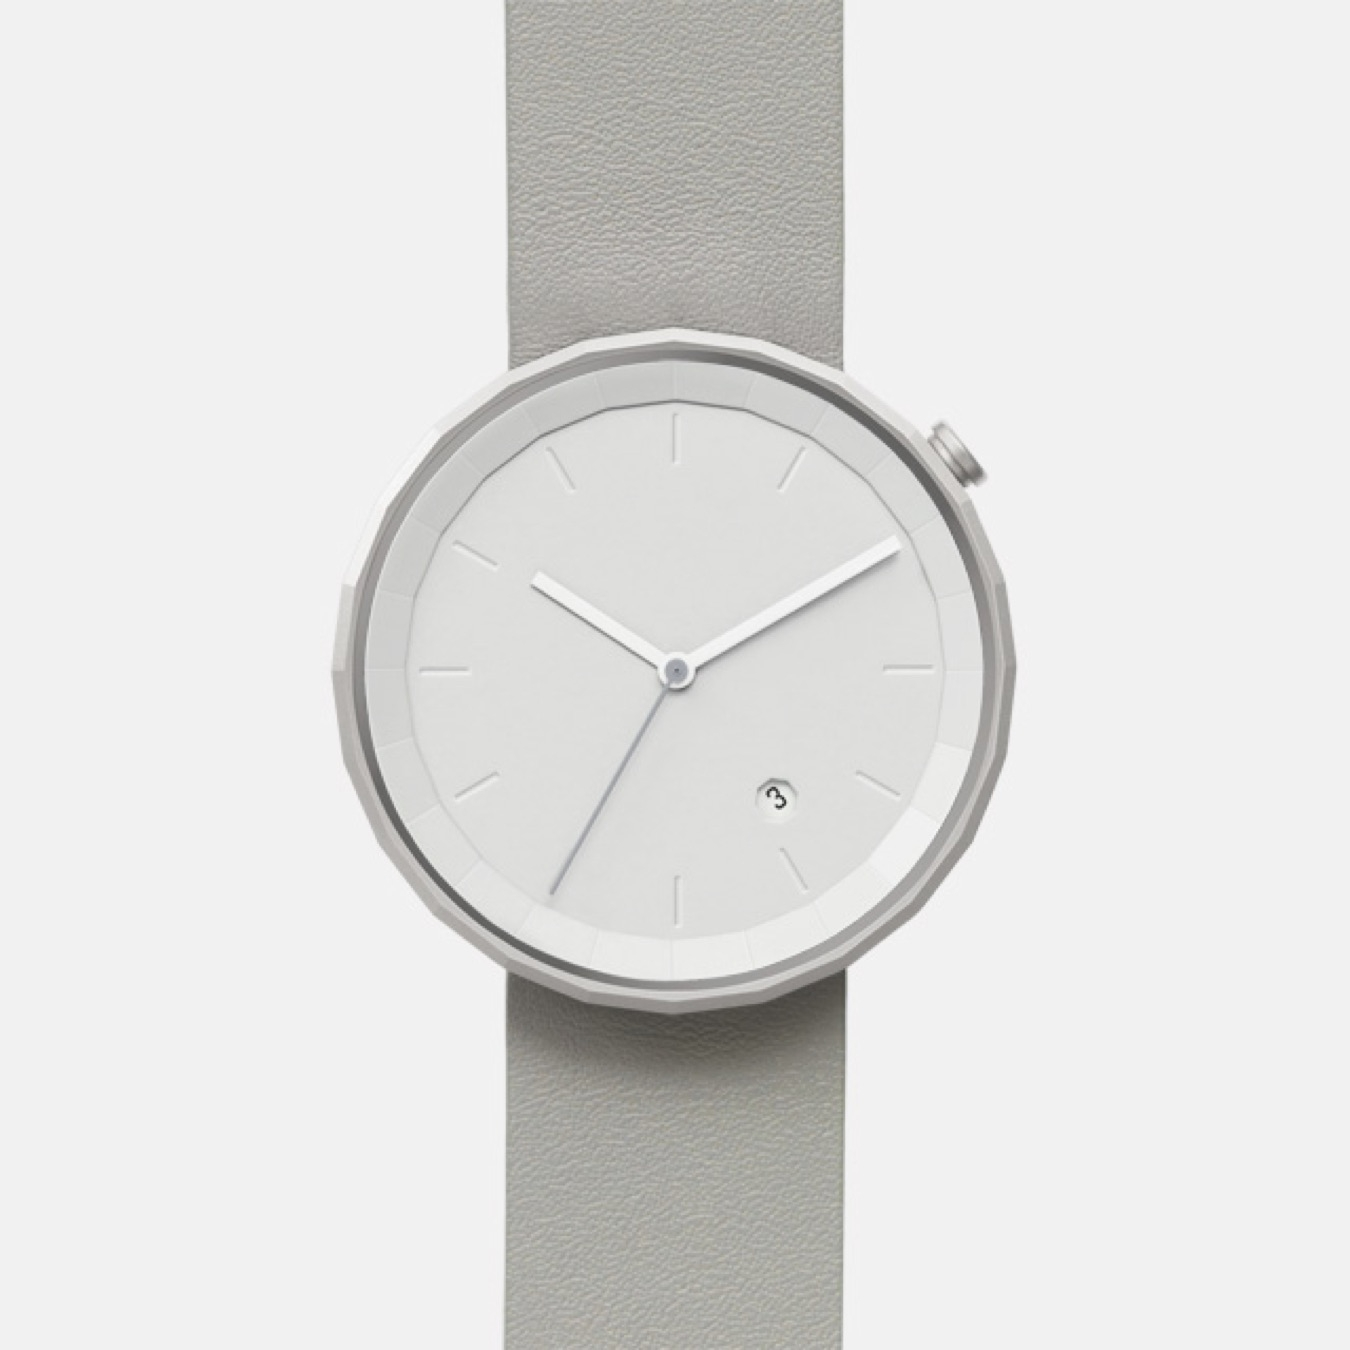 Polygon Watch 01 in Silver with Black Strap